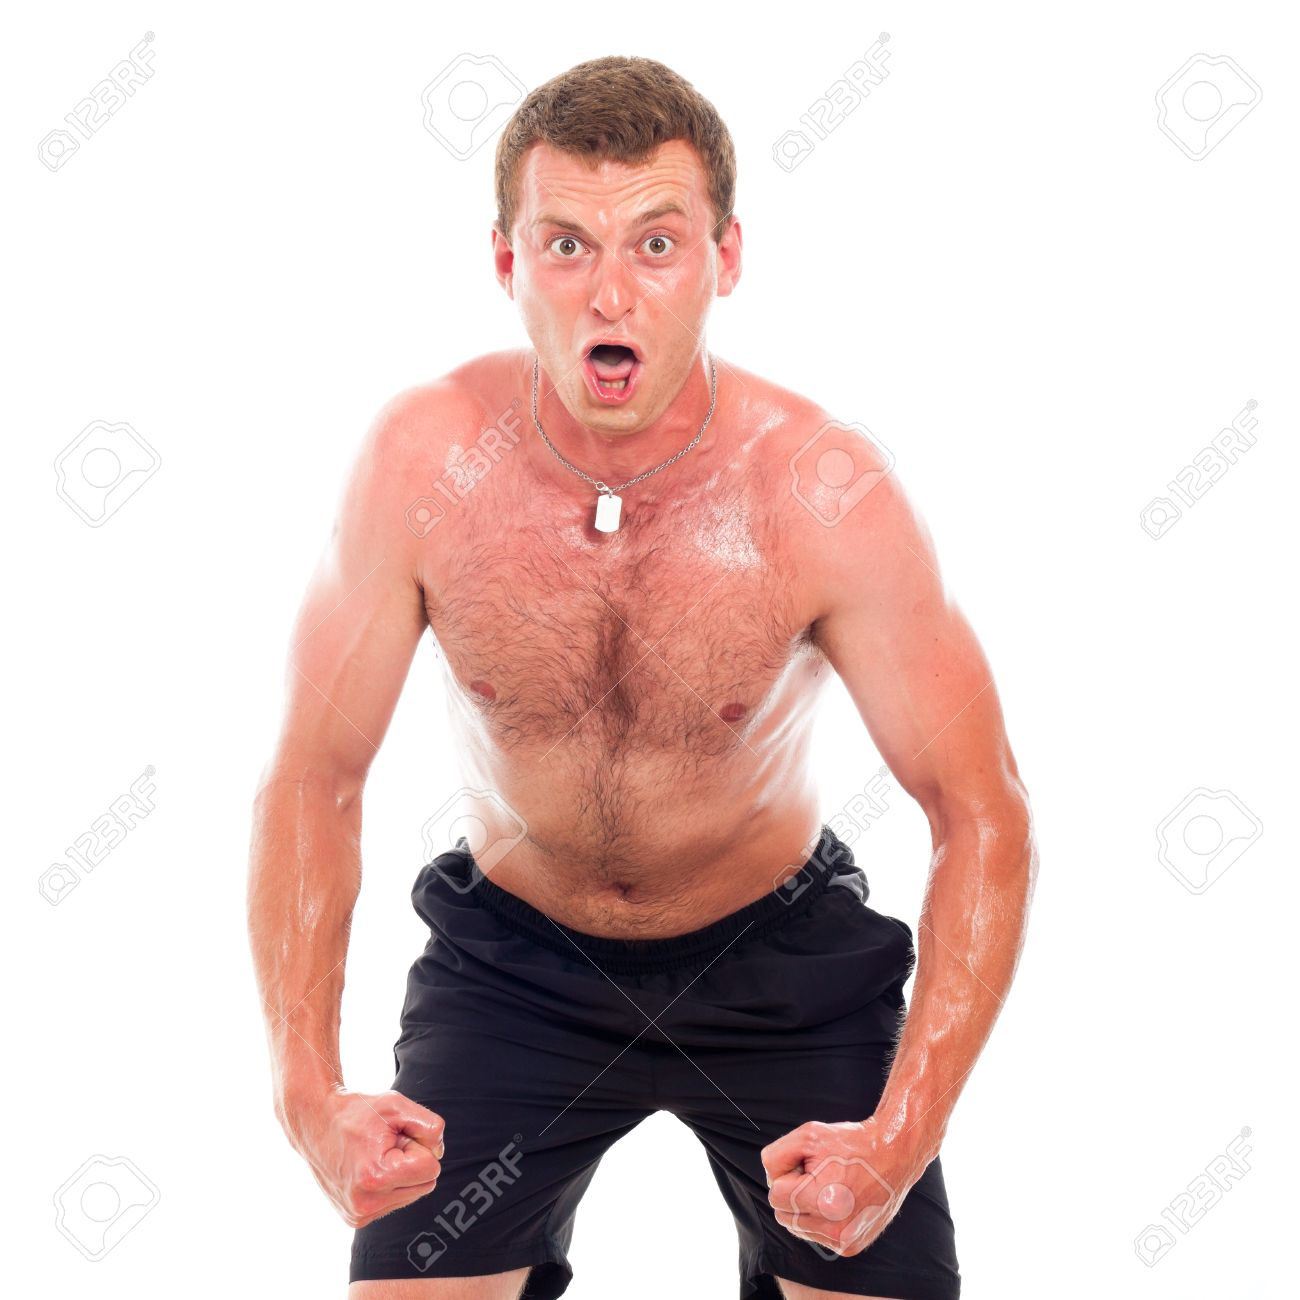 Funny young muscular sports man, isolated on white background. Stock Photo - 14779651